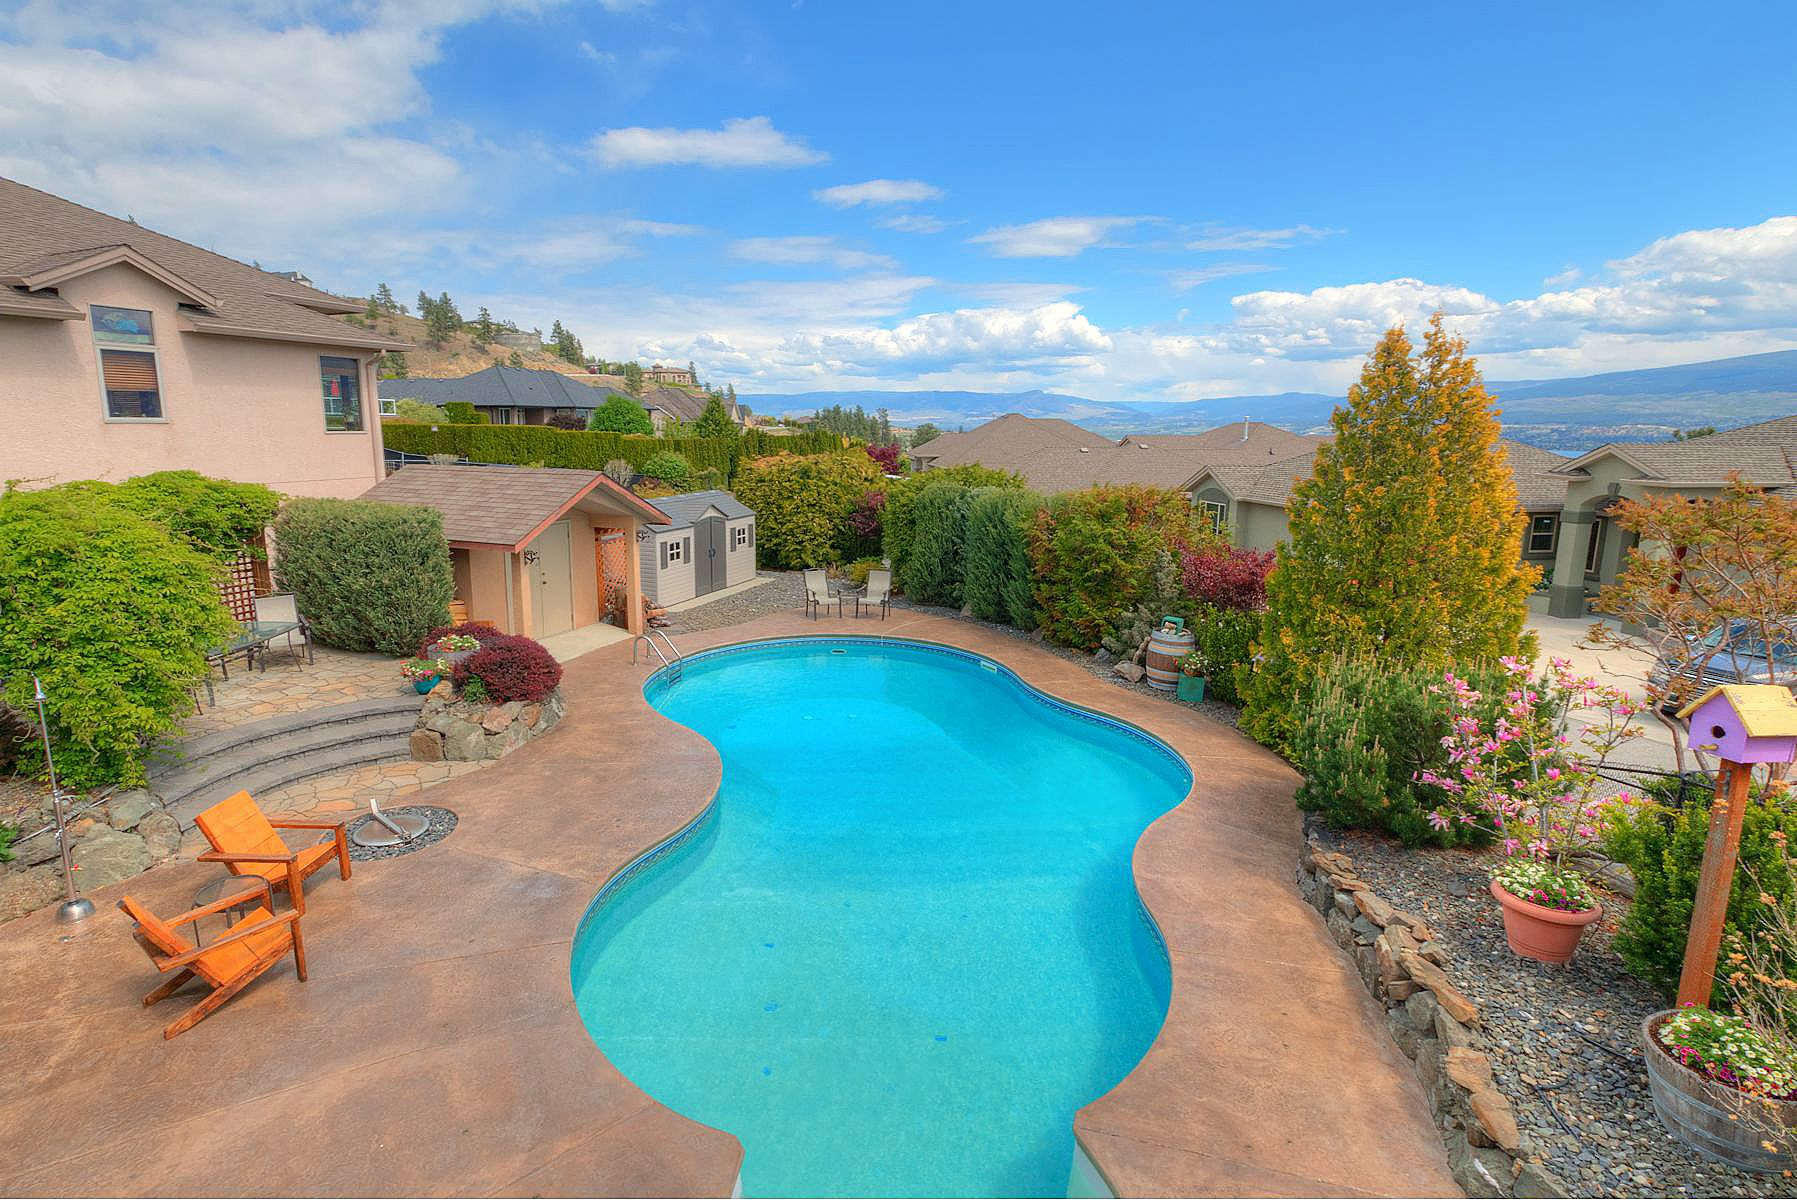 Main Photo: 3433 Ridge Boulevard in West Kelowna: Lakeview Heights House for sale (Central Okanagan)  : MLS®# 10231693